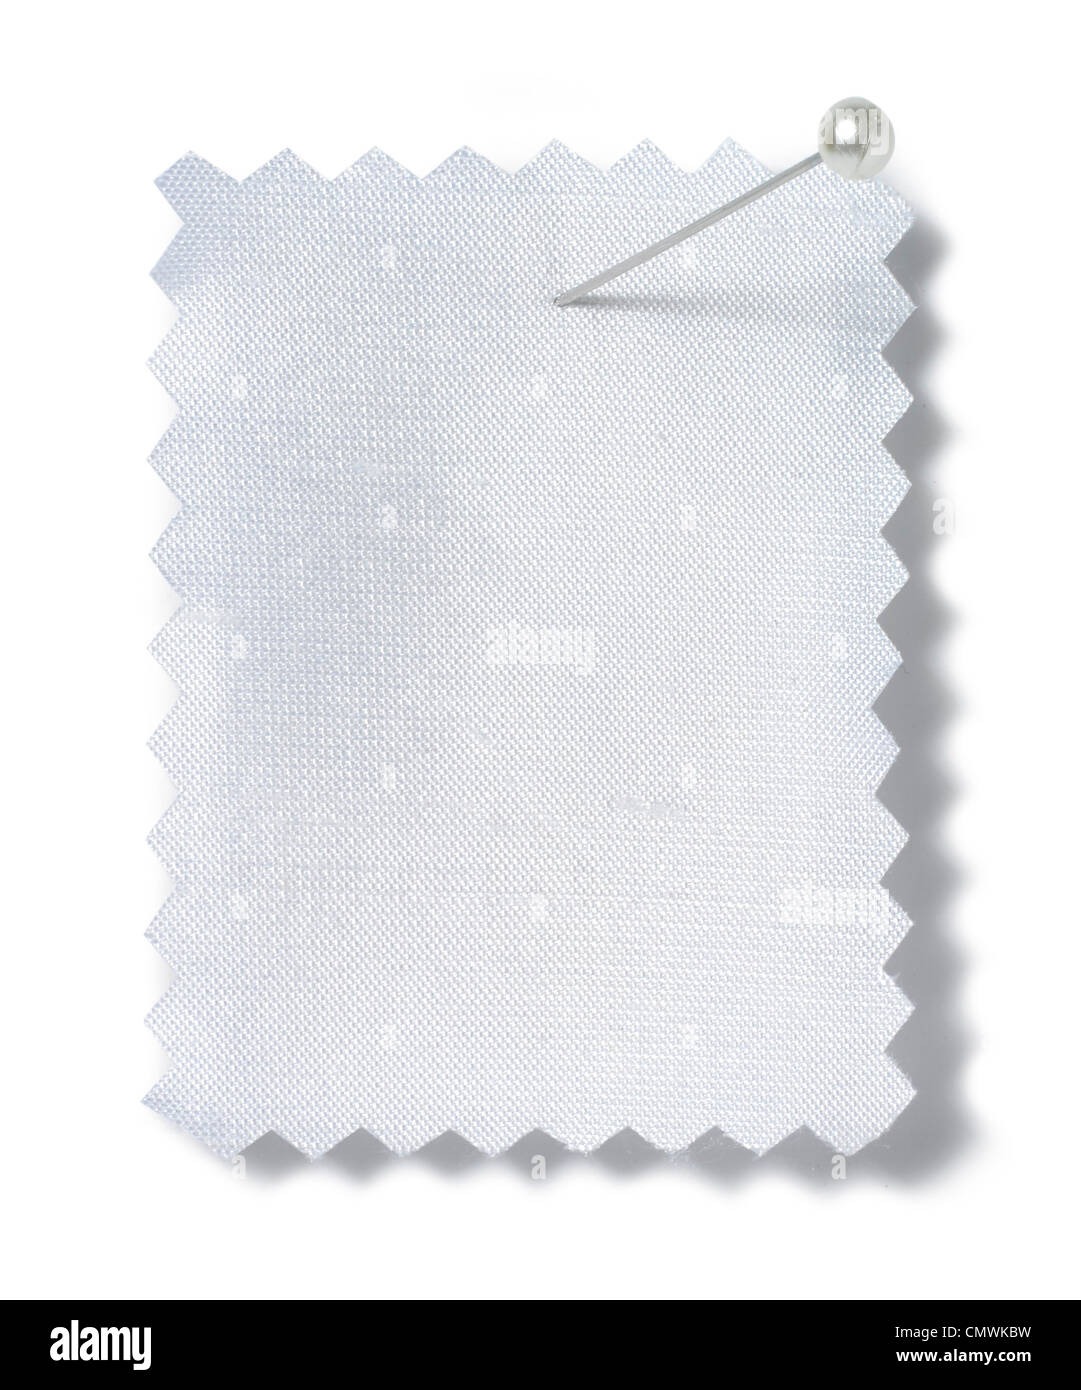 pinned cloth sample - Stock Image